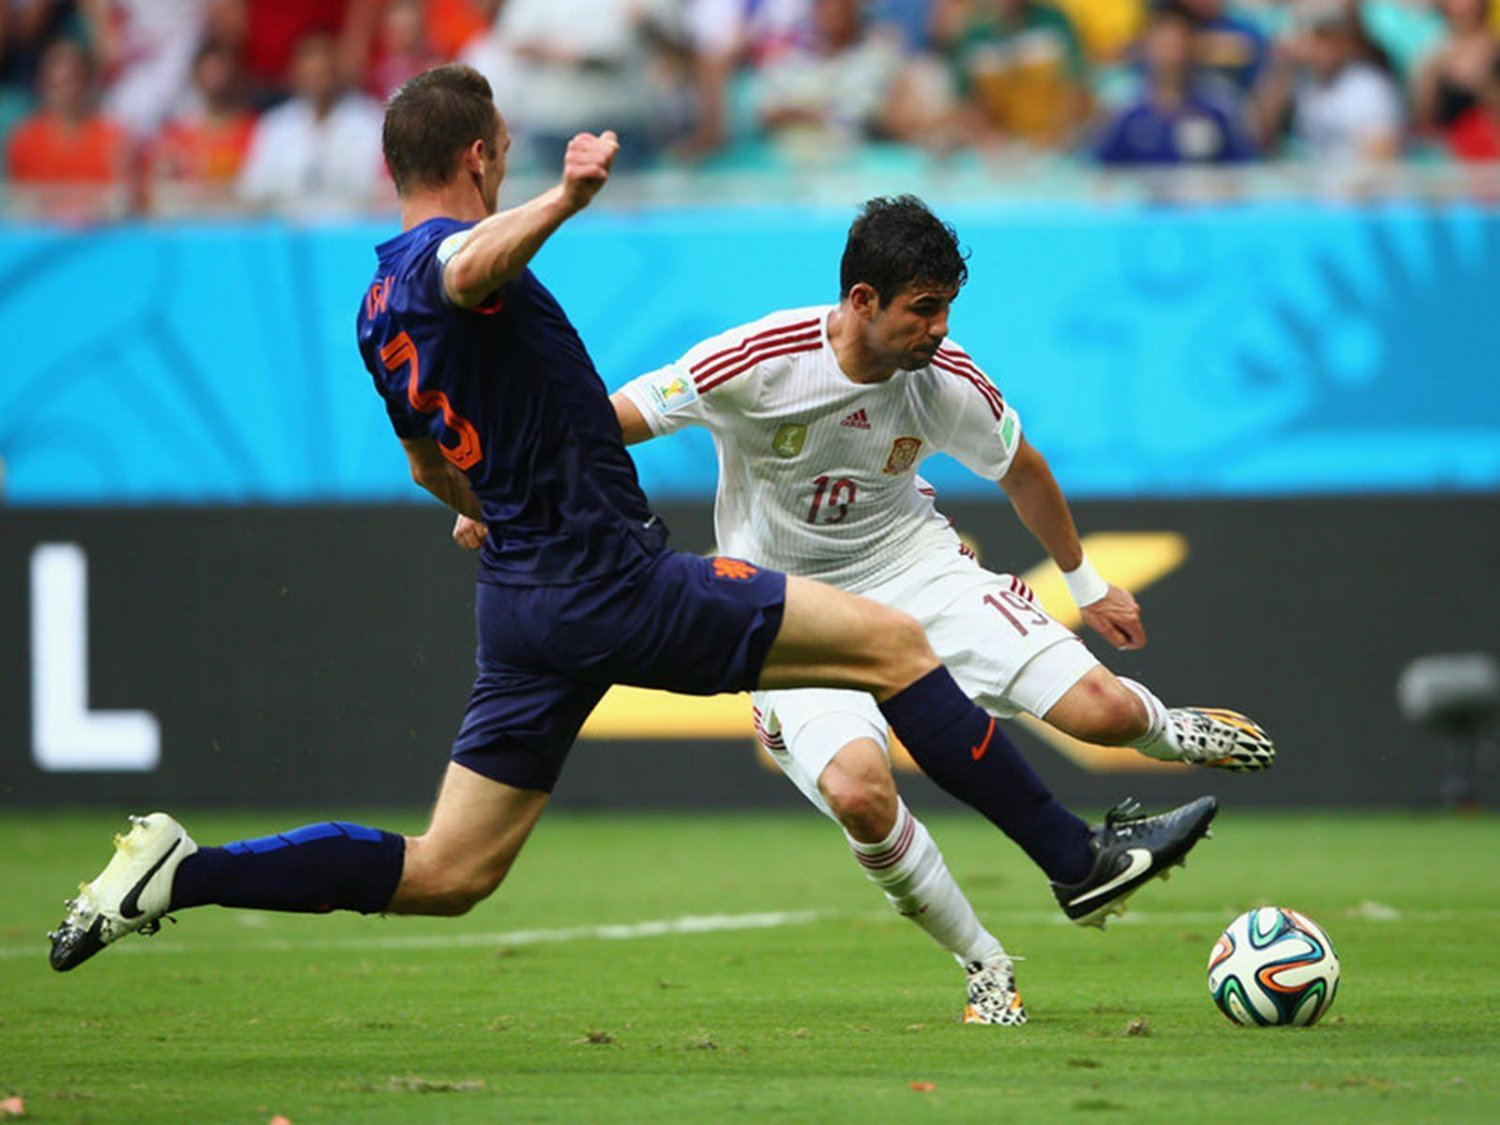 304 - 8 X 6 Photo - Football - FIFA World Cup 2014 - Spain V Holland - Diego  Costa  Is  Fouled